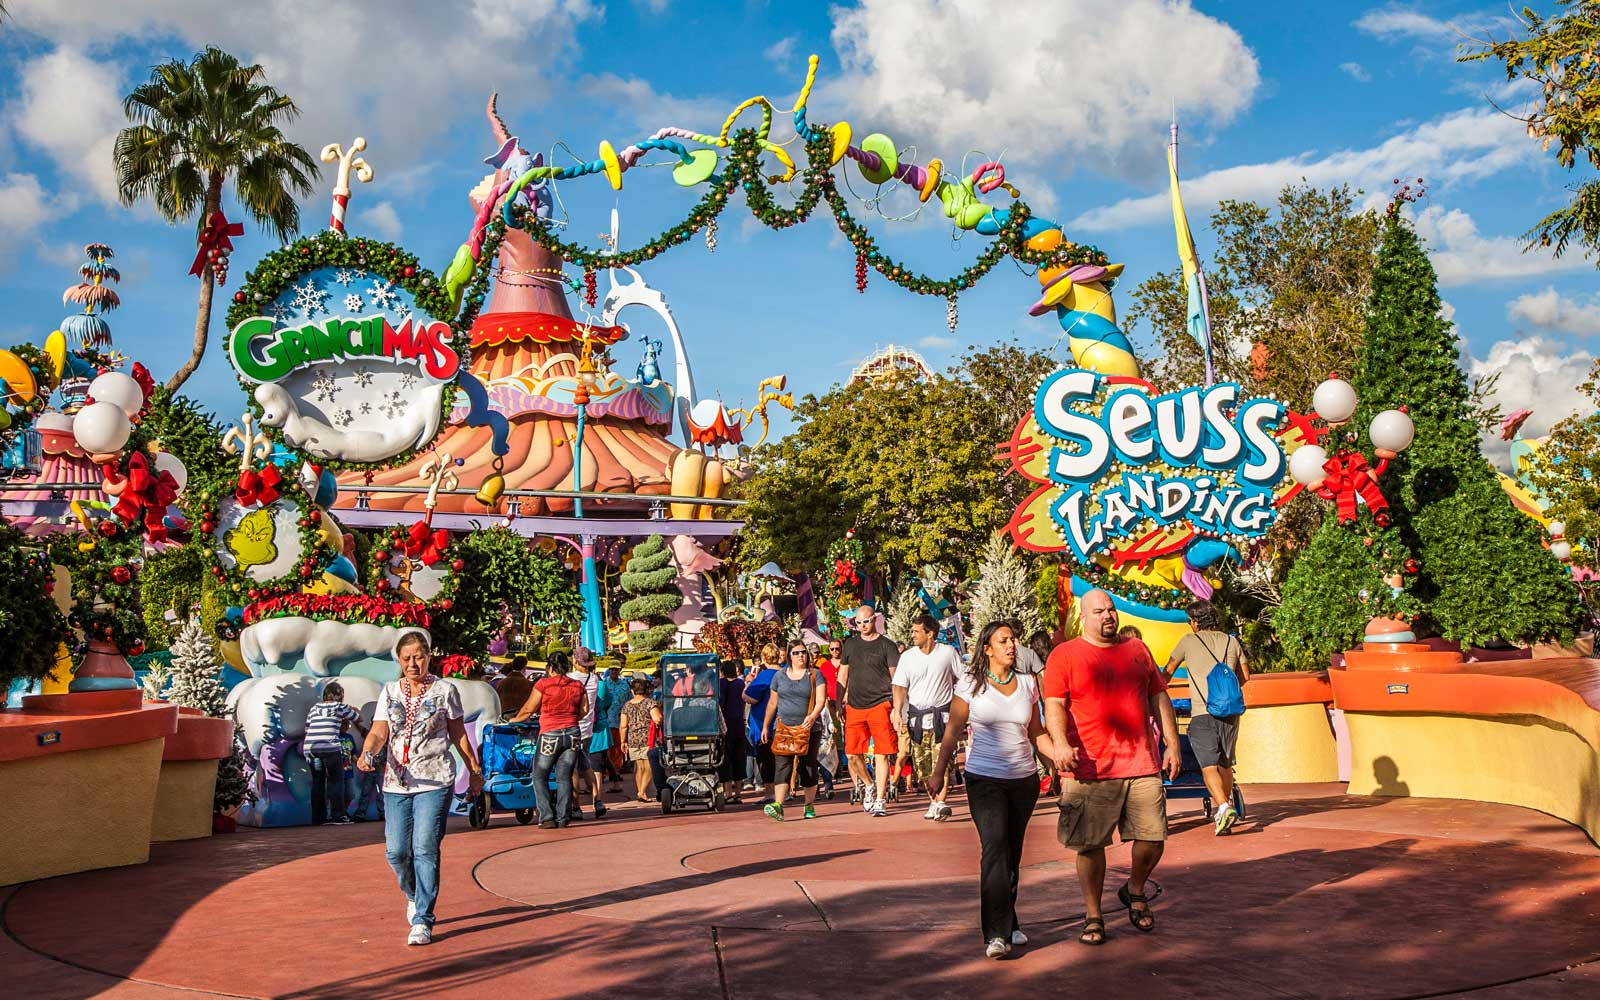 Park guests at entrance to Seuss Landing at Universal Studios Islands of Adventure in Orlando, Florida